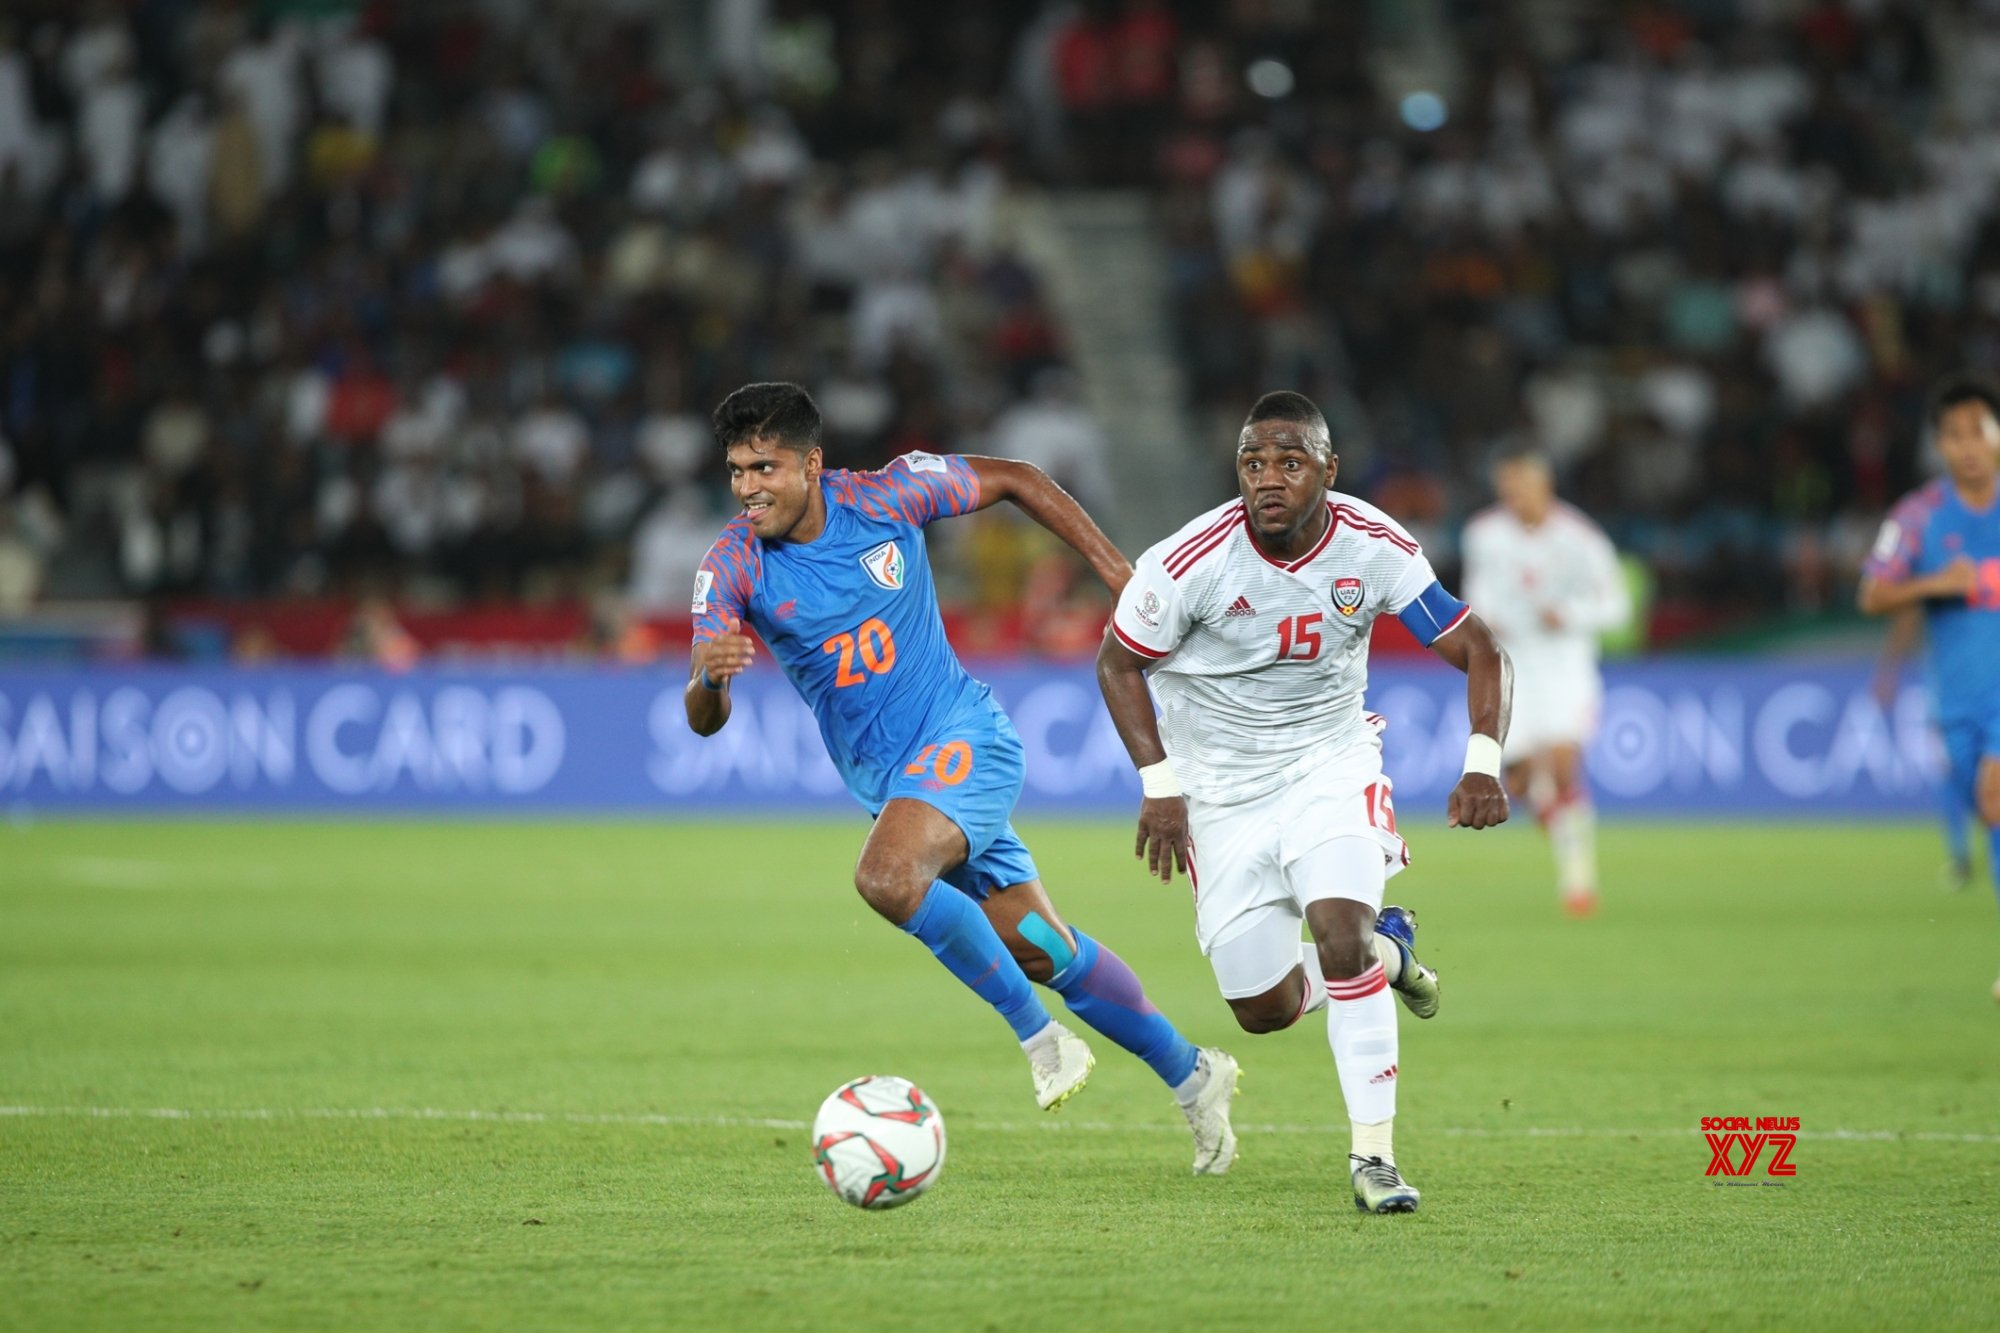 Abu Dhabi: AFC Asian Cup 2019 - India vs UAE #Gallery